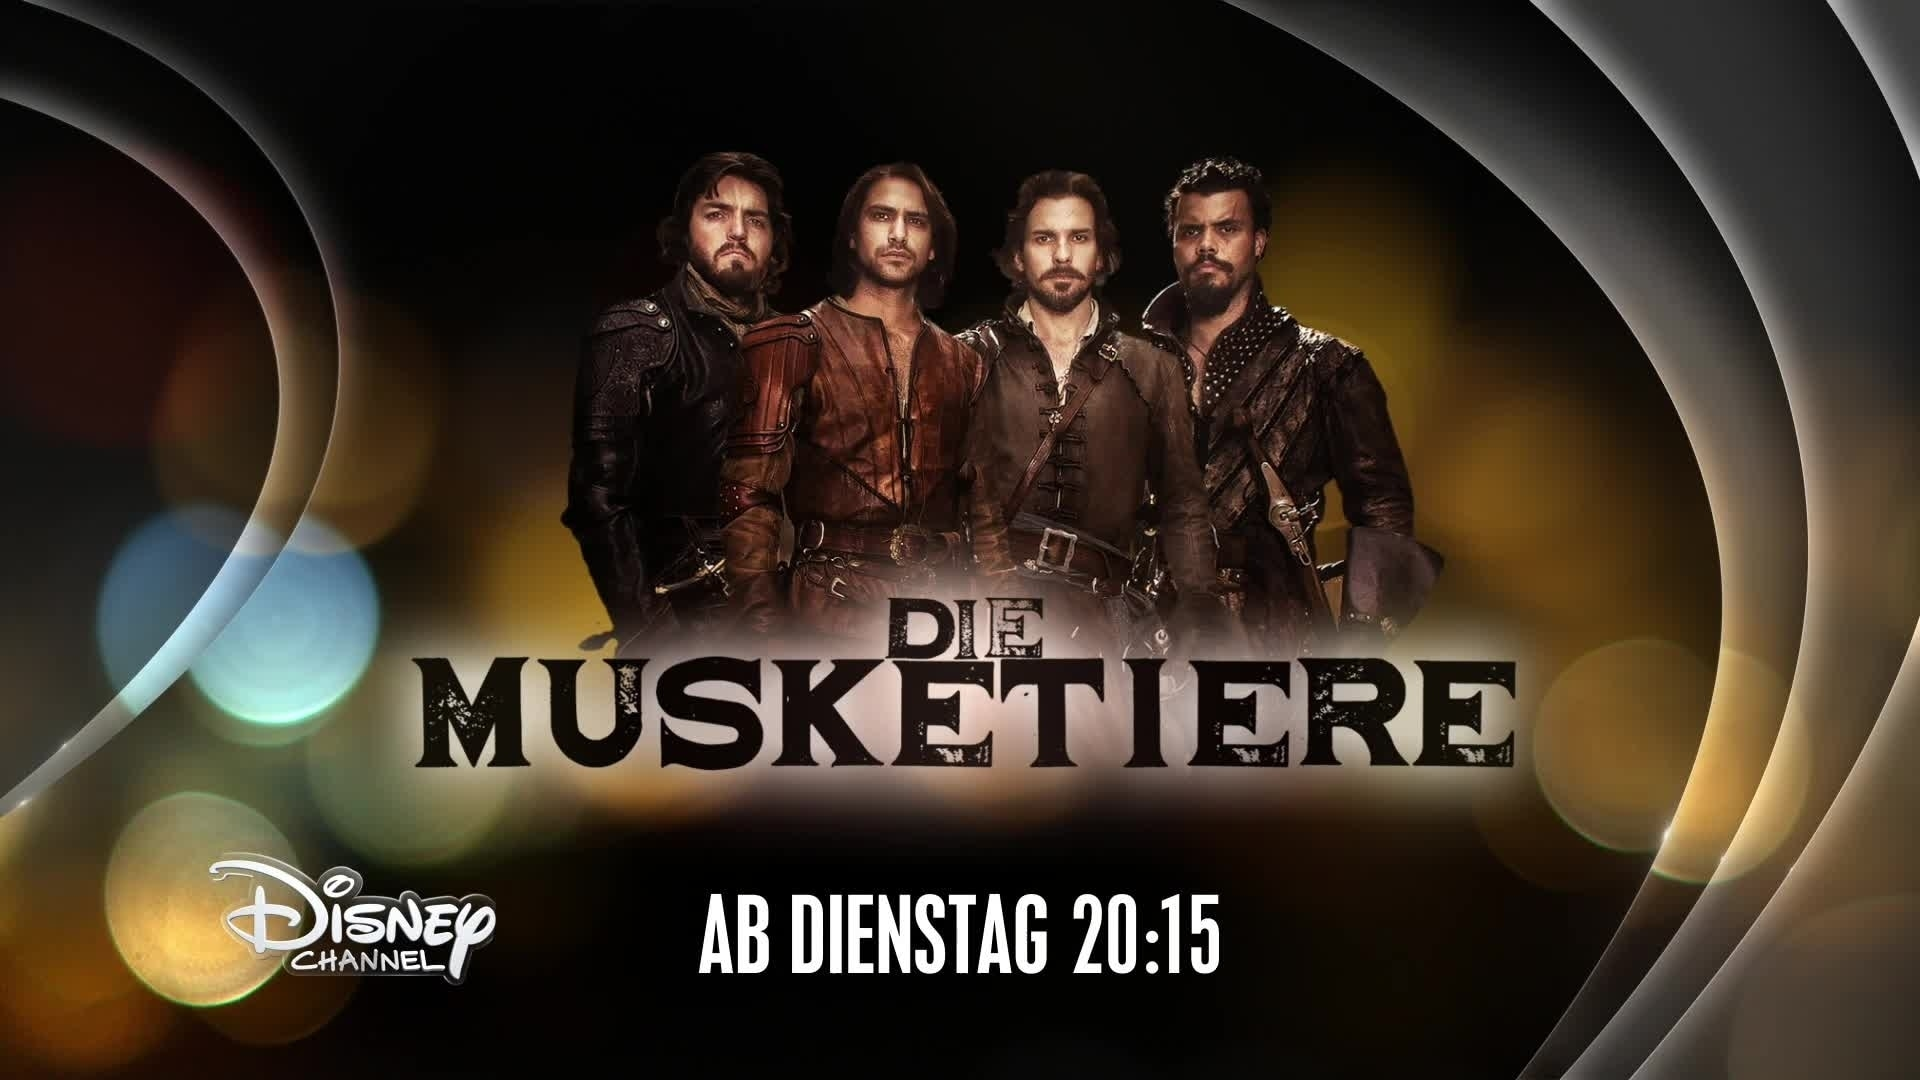 Die Musketiere - Trailer